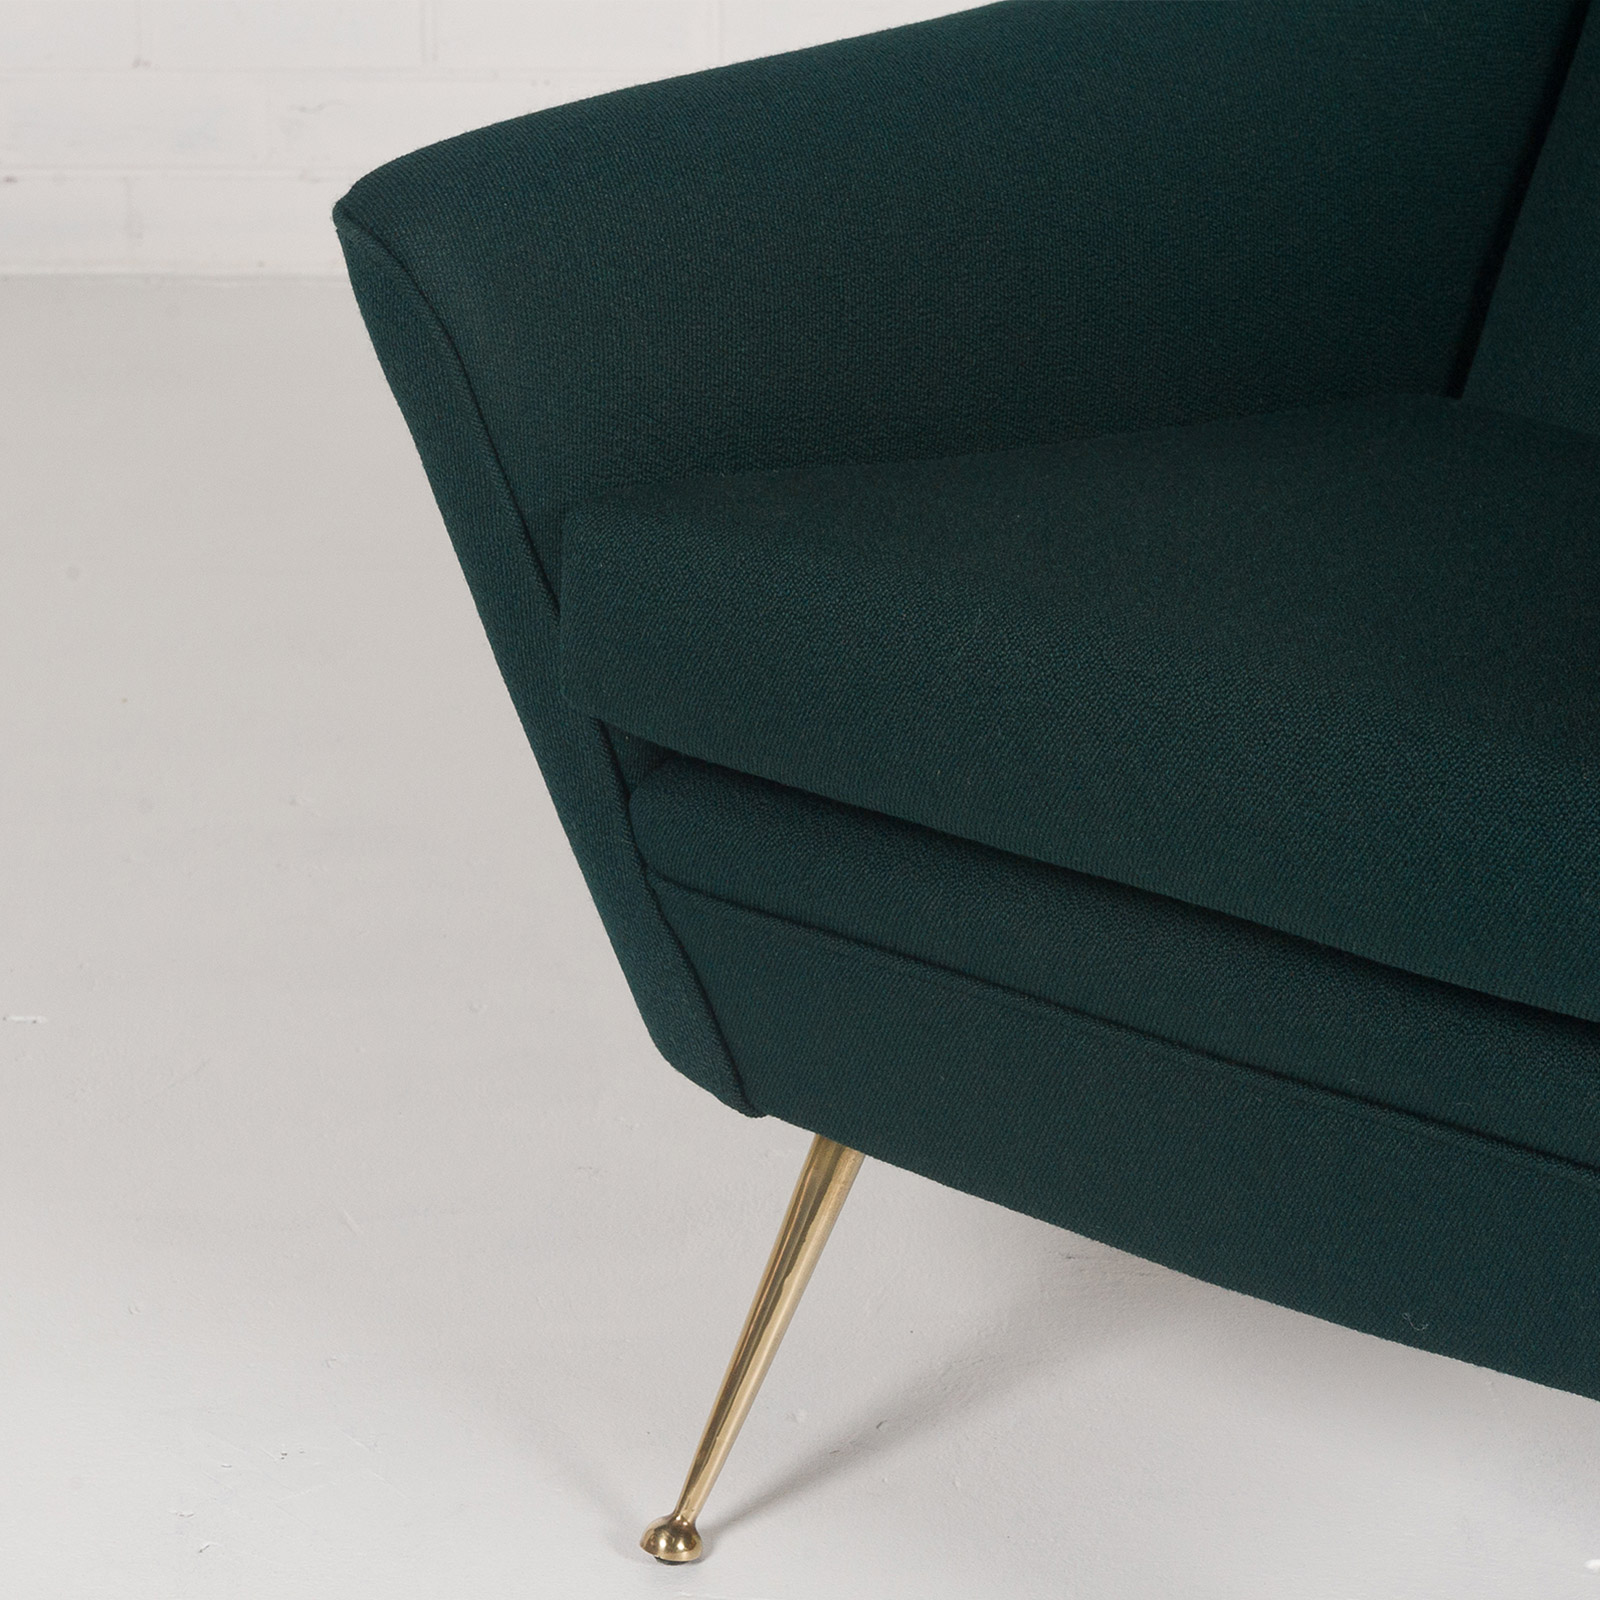 Armchair With Brass Legs And New Kvadart Upholstery 1950s Italy 06